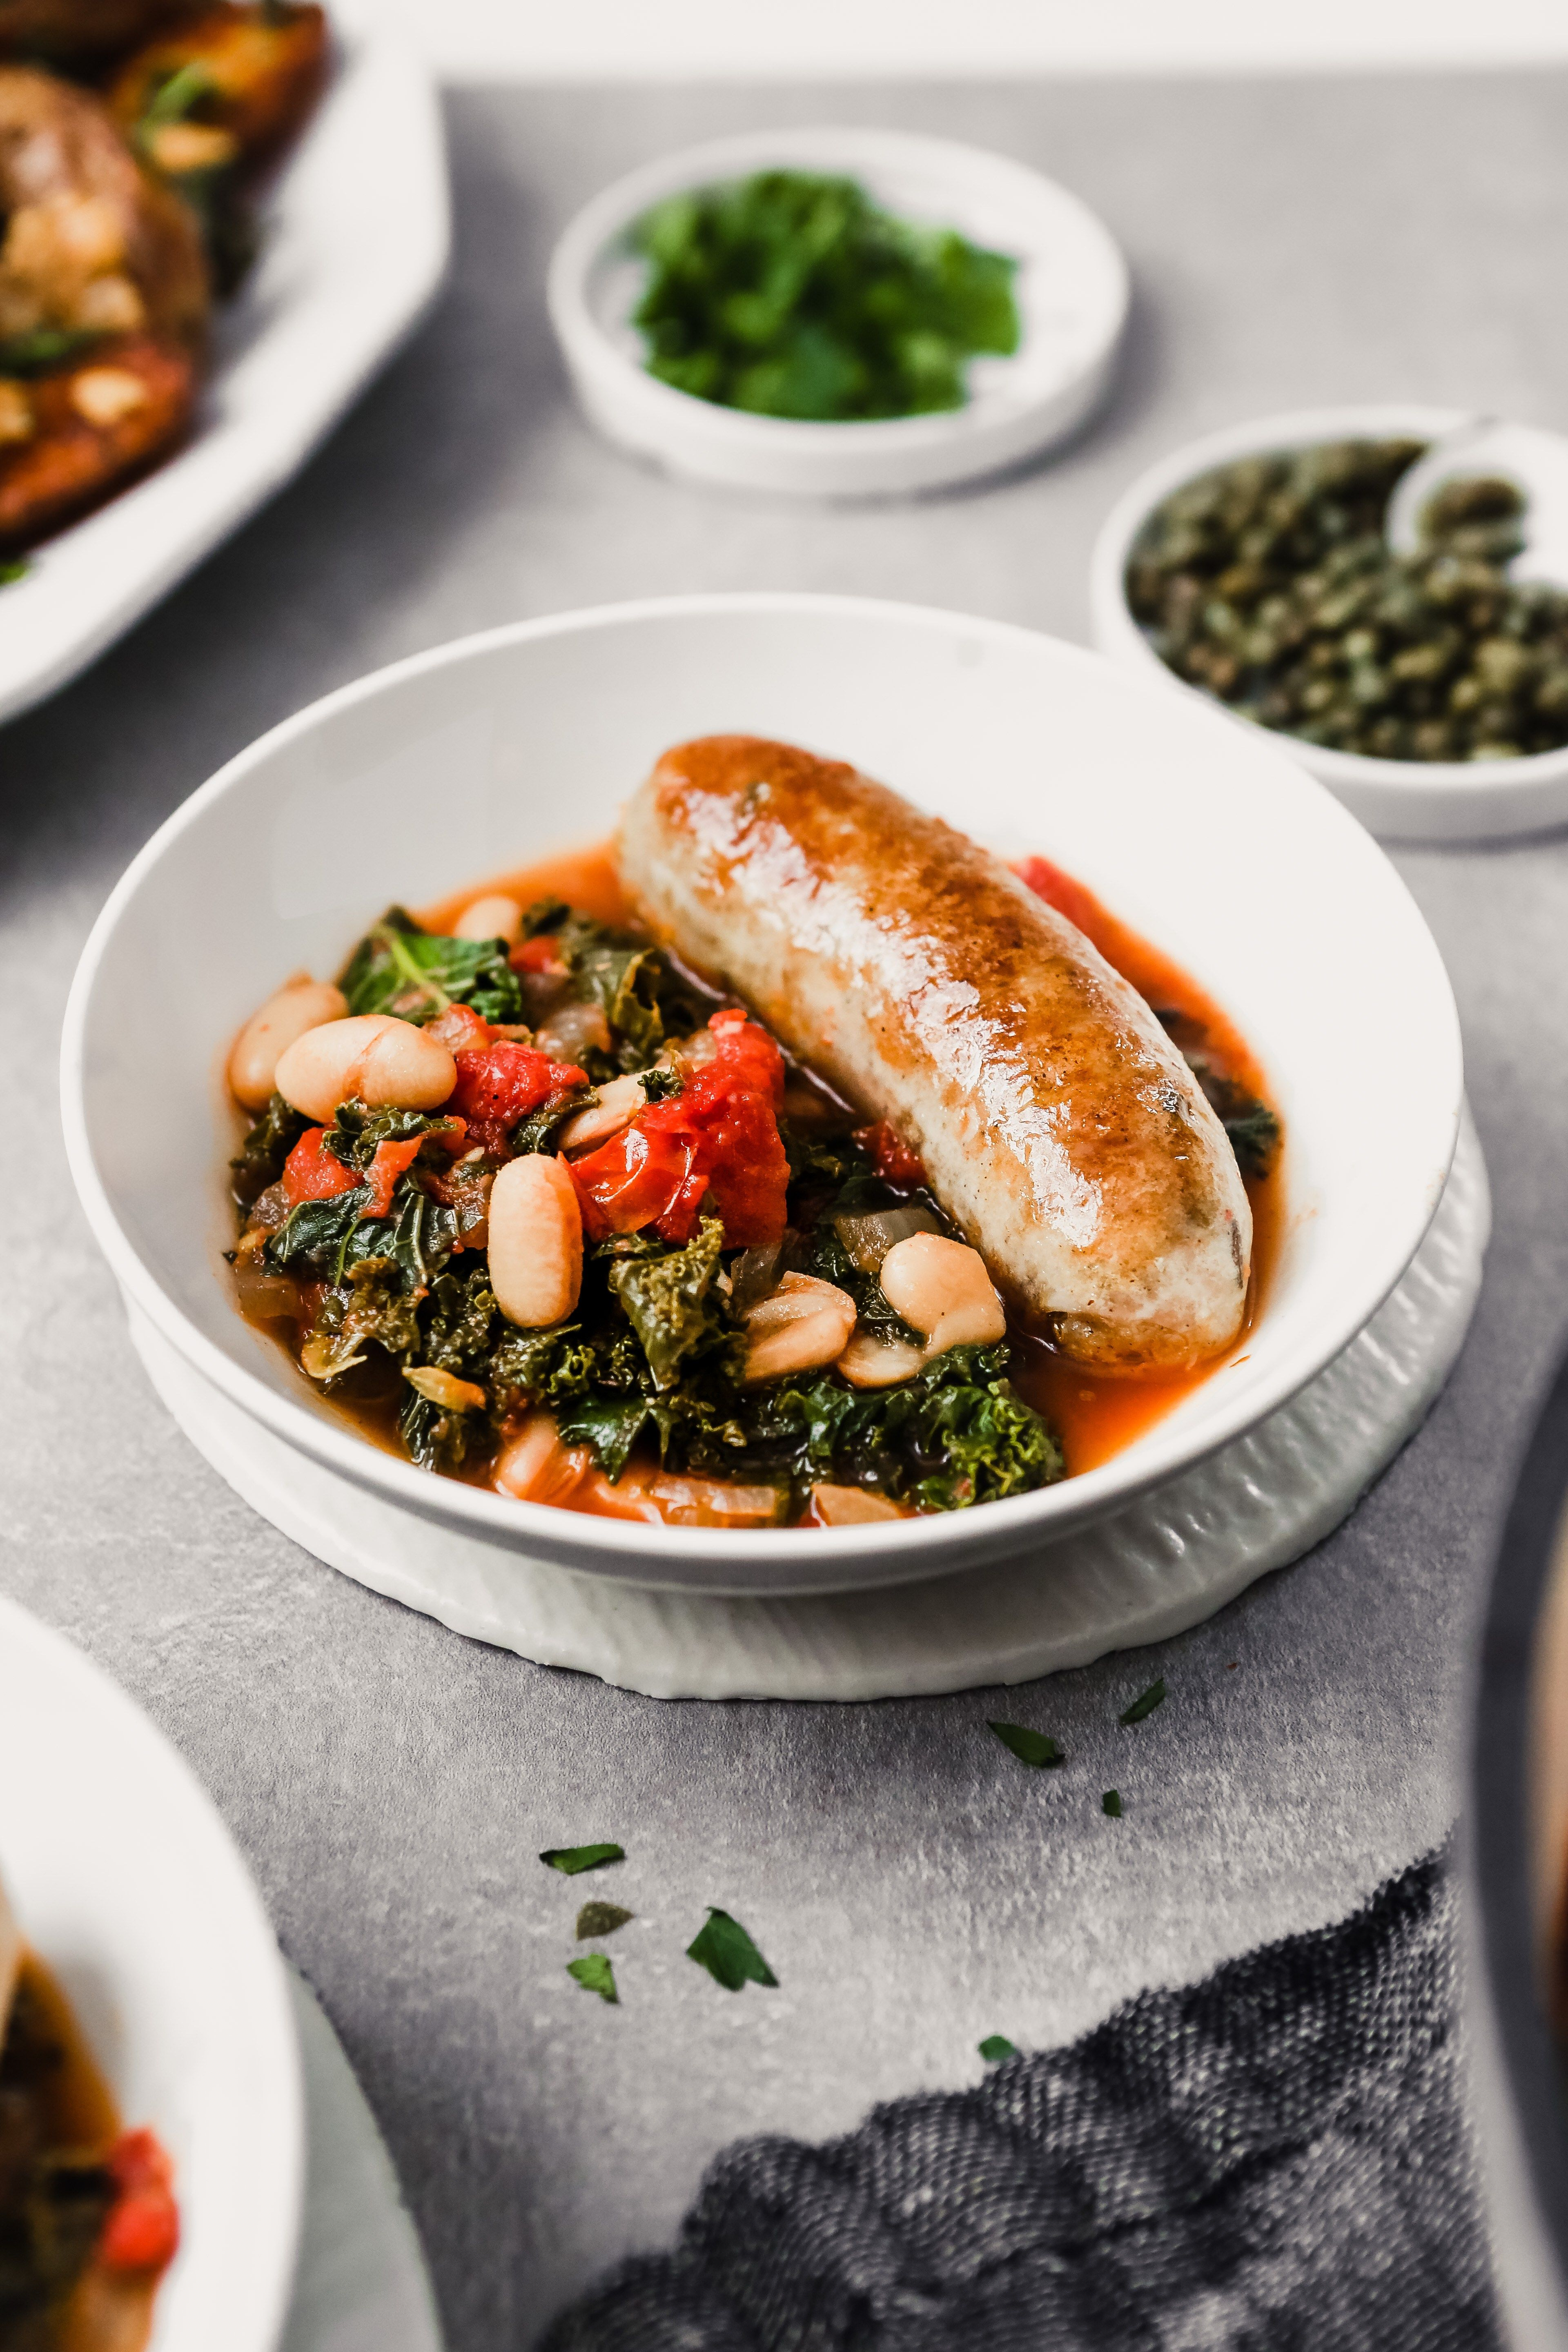 Tuscan Chicken Sausages With Kale White Beans Recipe Chicken Sausage Recipes Italian Chicken Sausage Night Dinner Recipes